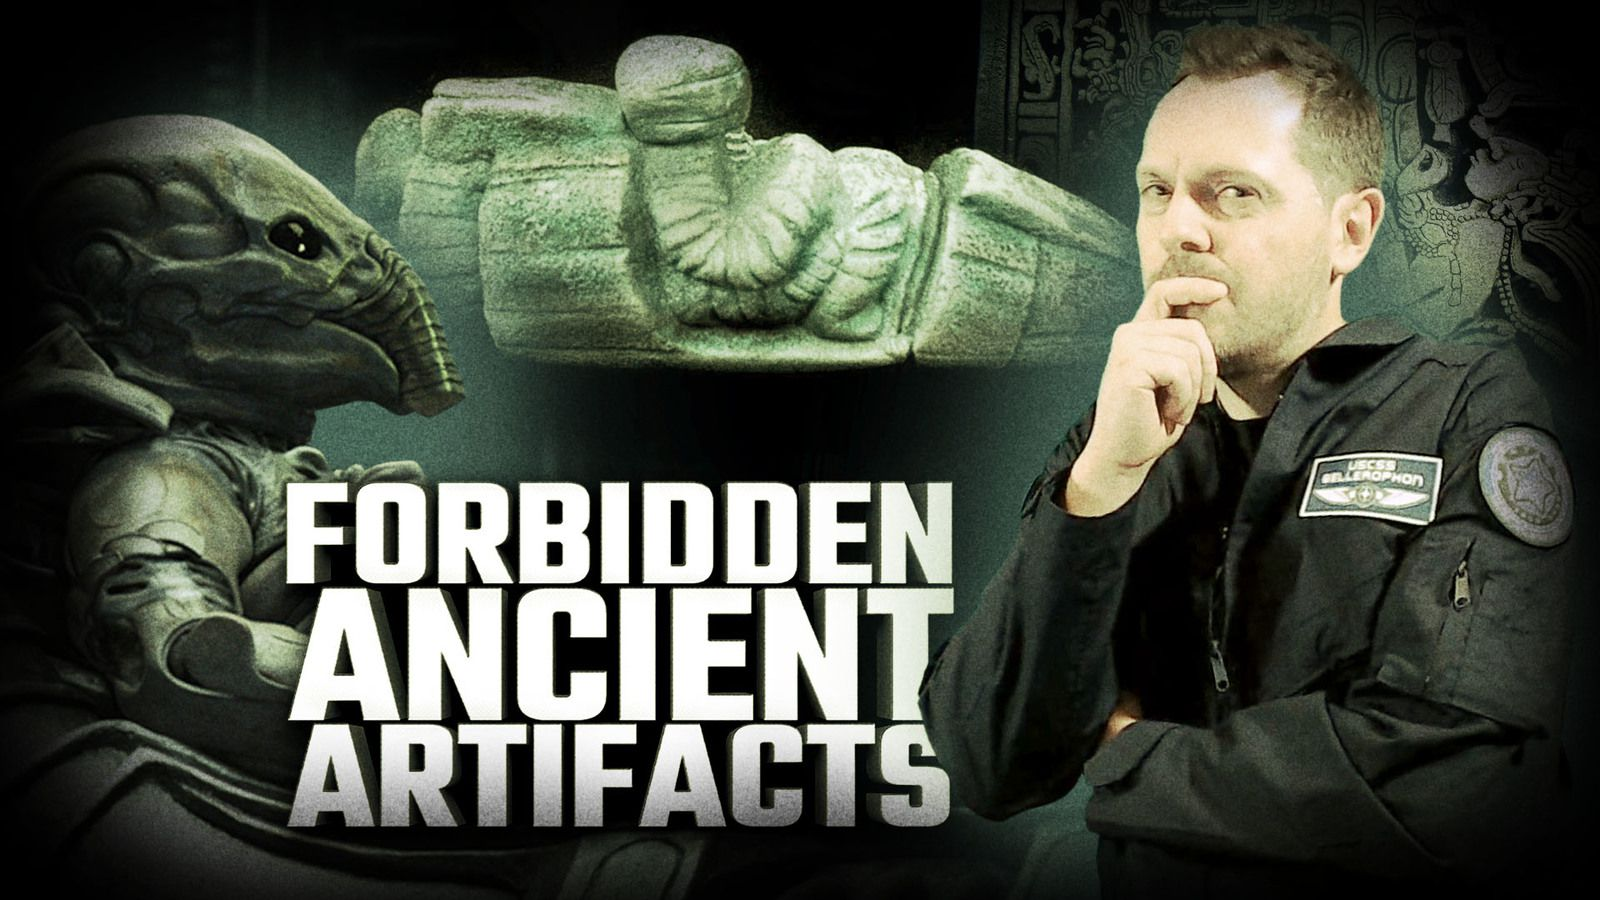 👽 Forbidden Ancient Artifacts Depicting Highly Advanced Spaceships